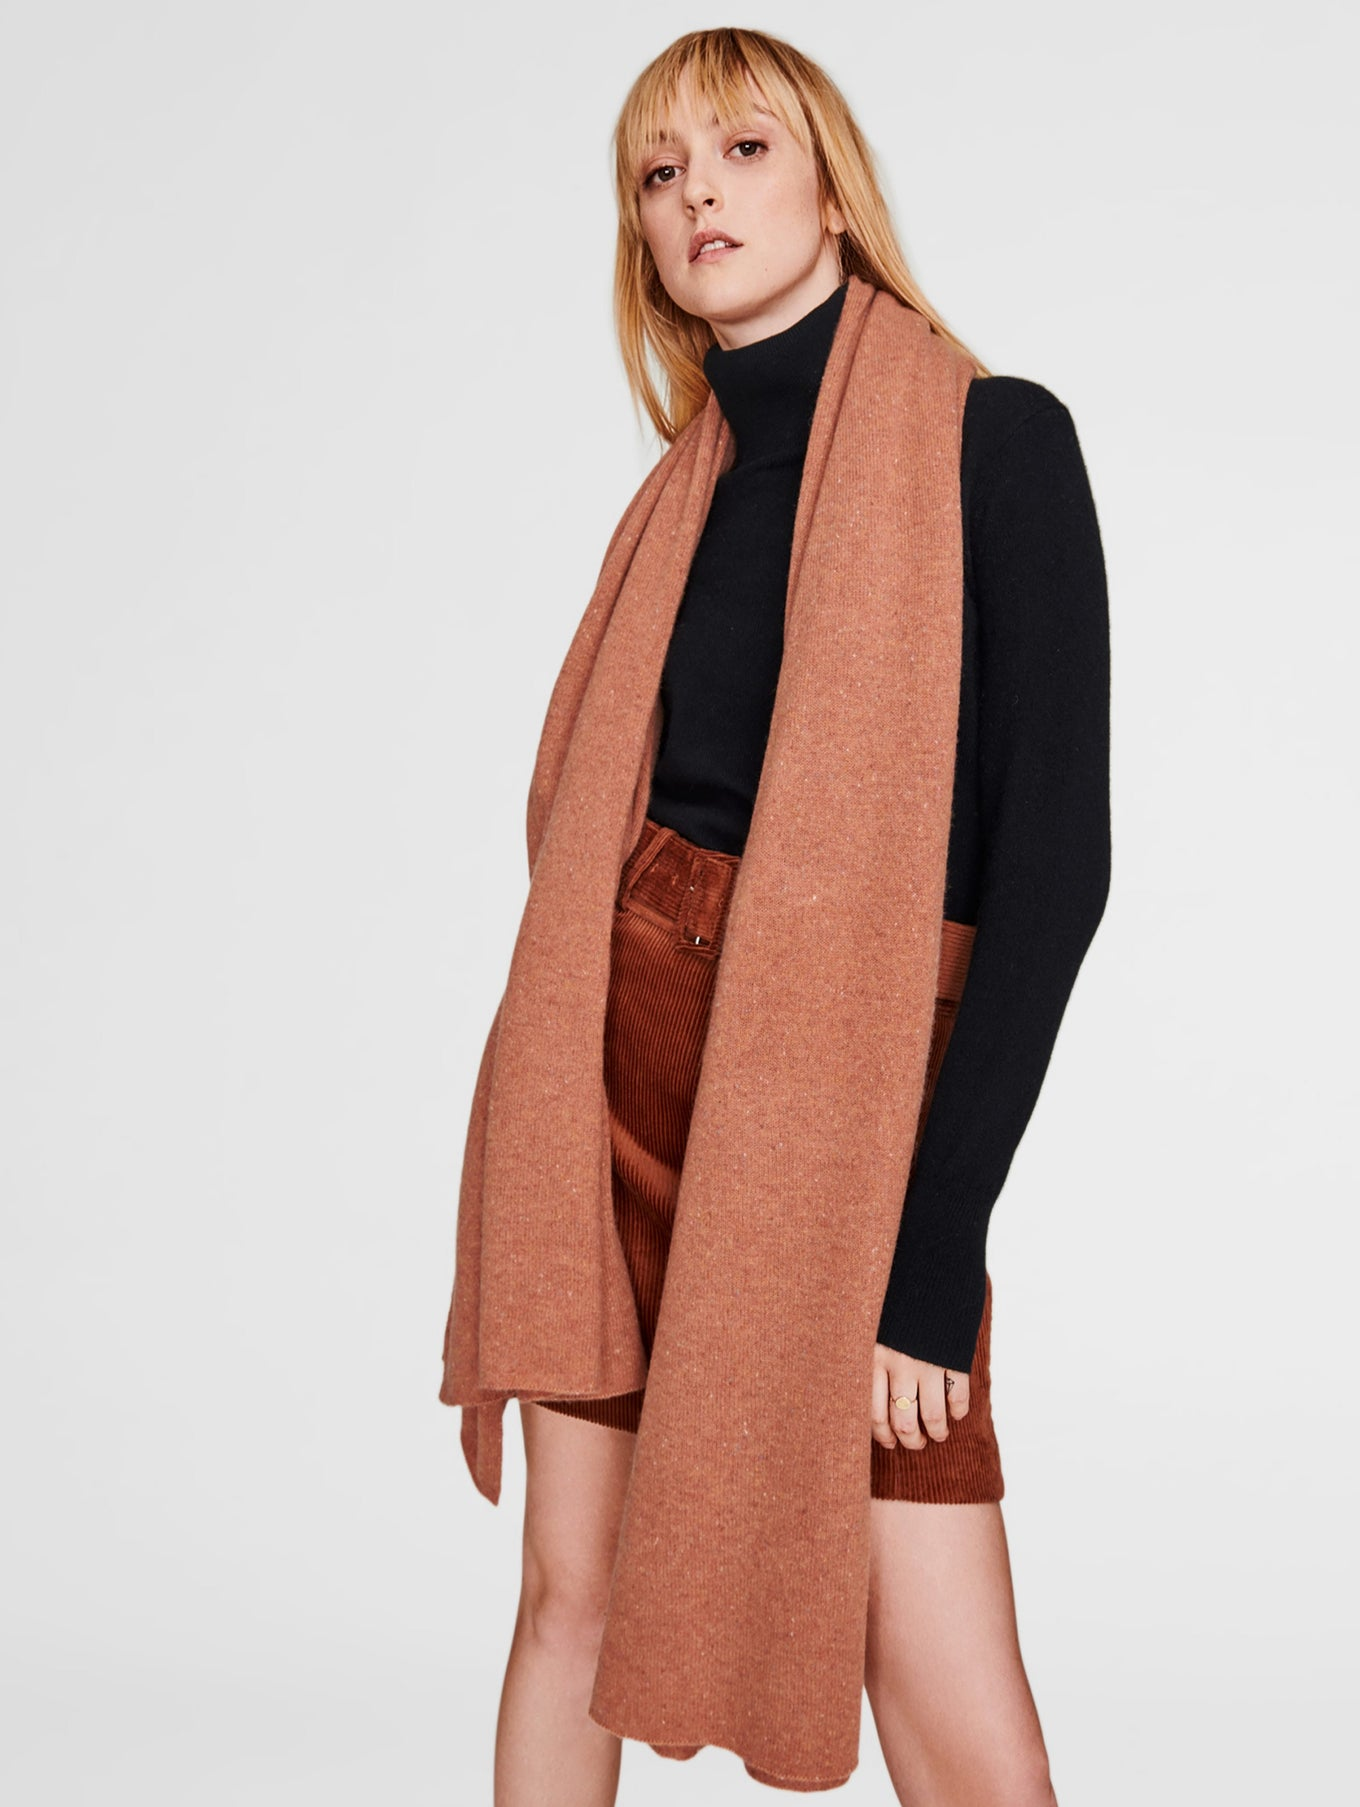 Cashmere Travel Wrap - Tan Tweed - Image 1